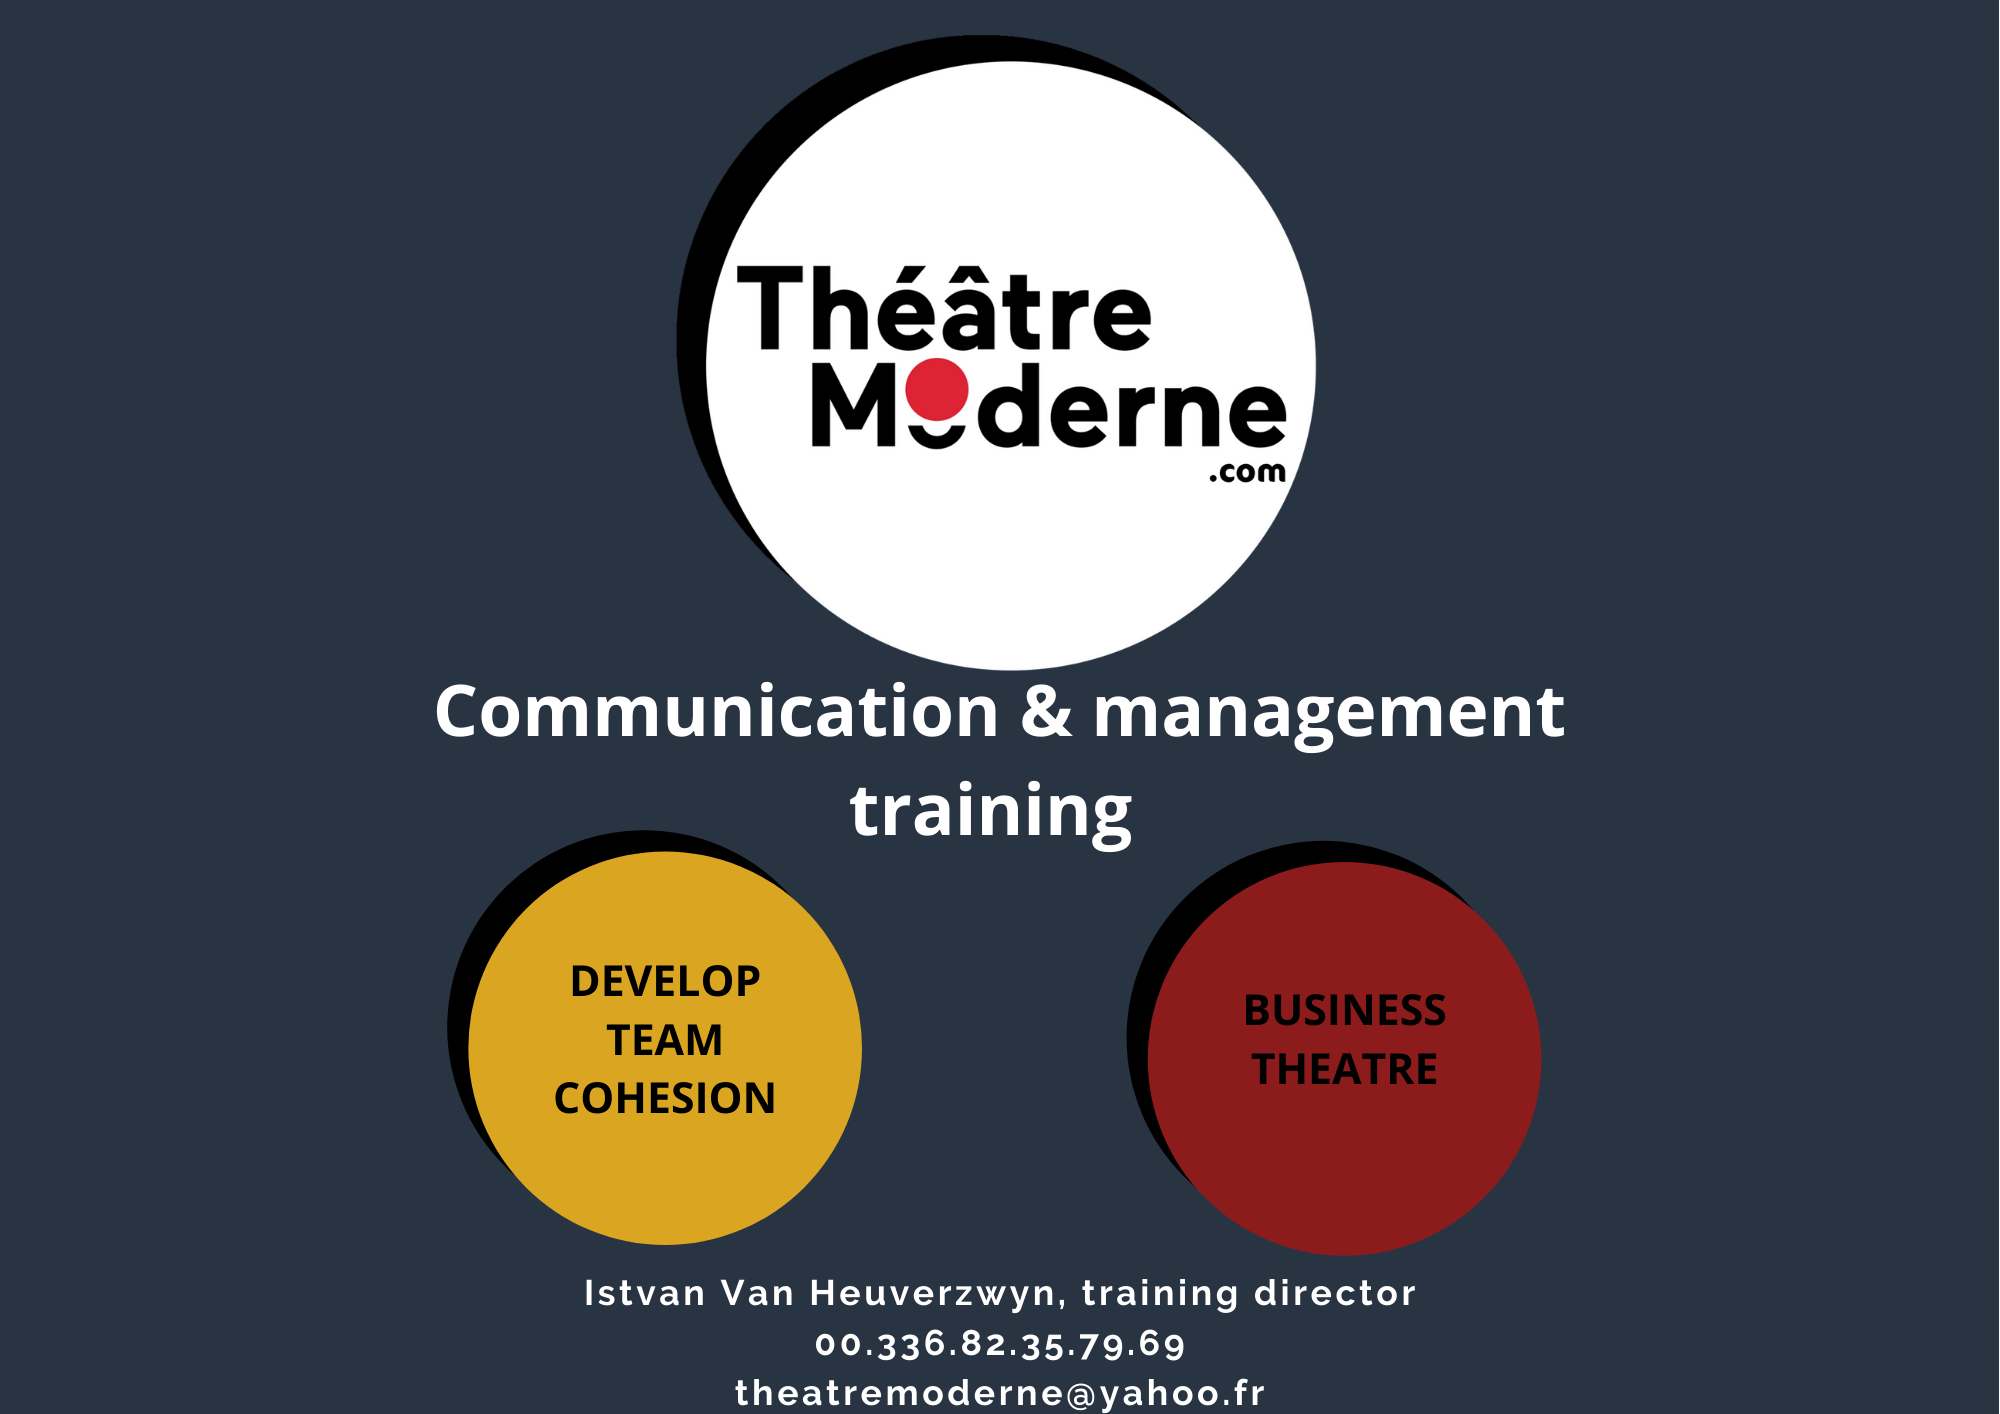 6 -Registration, quote, communication and management training